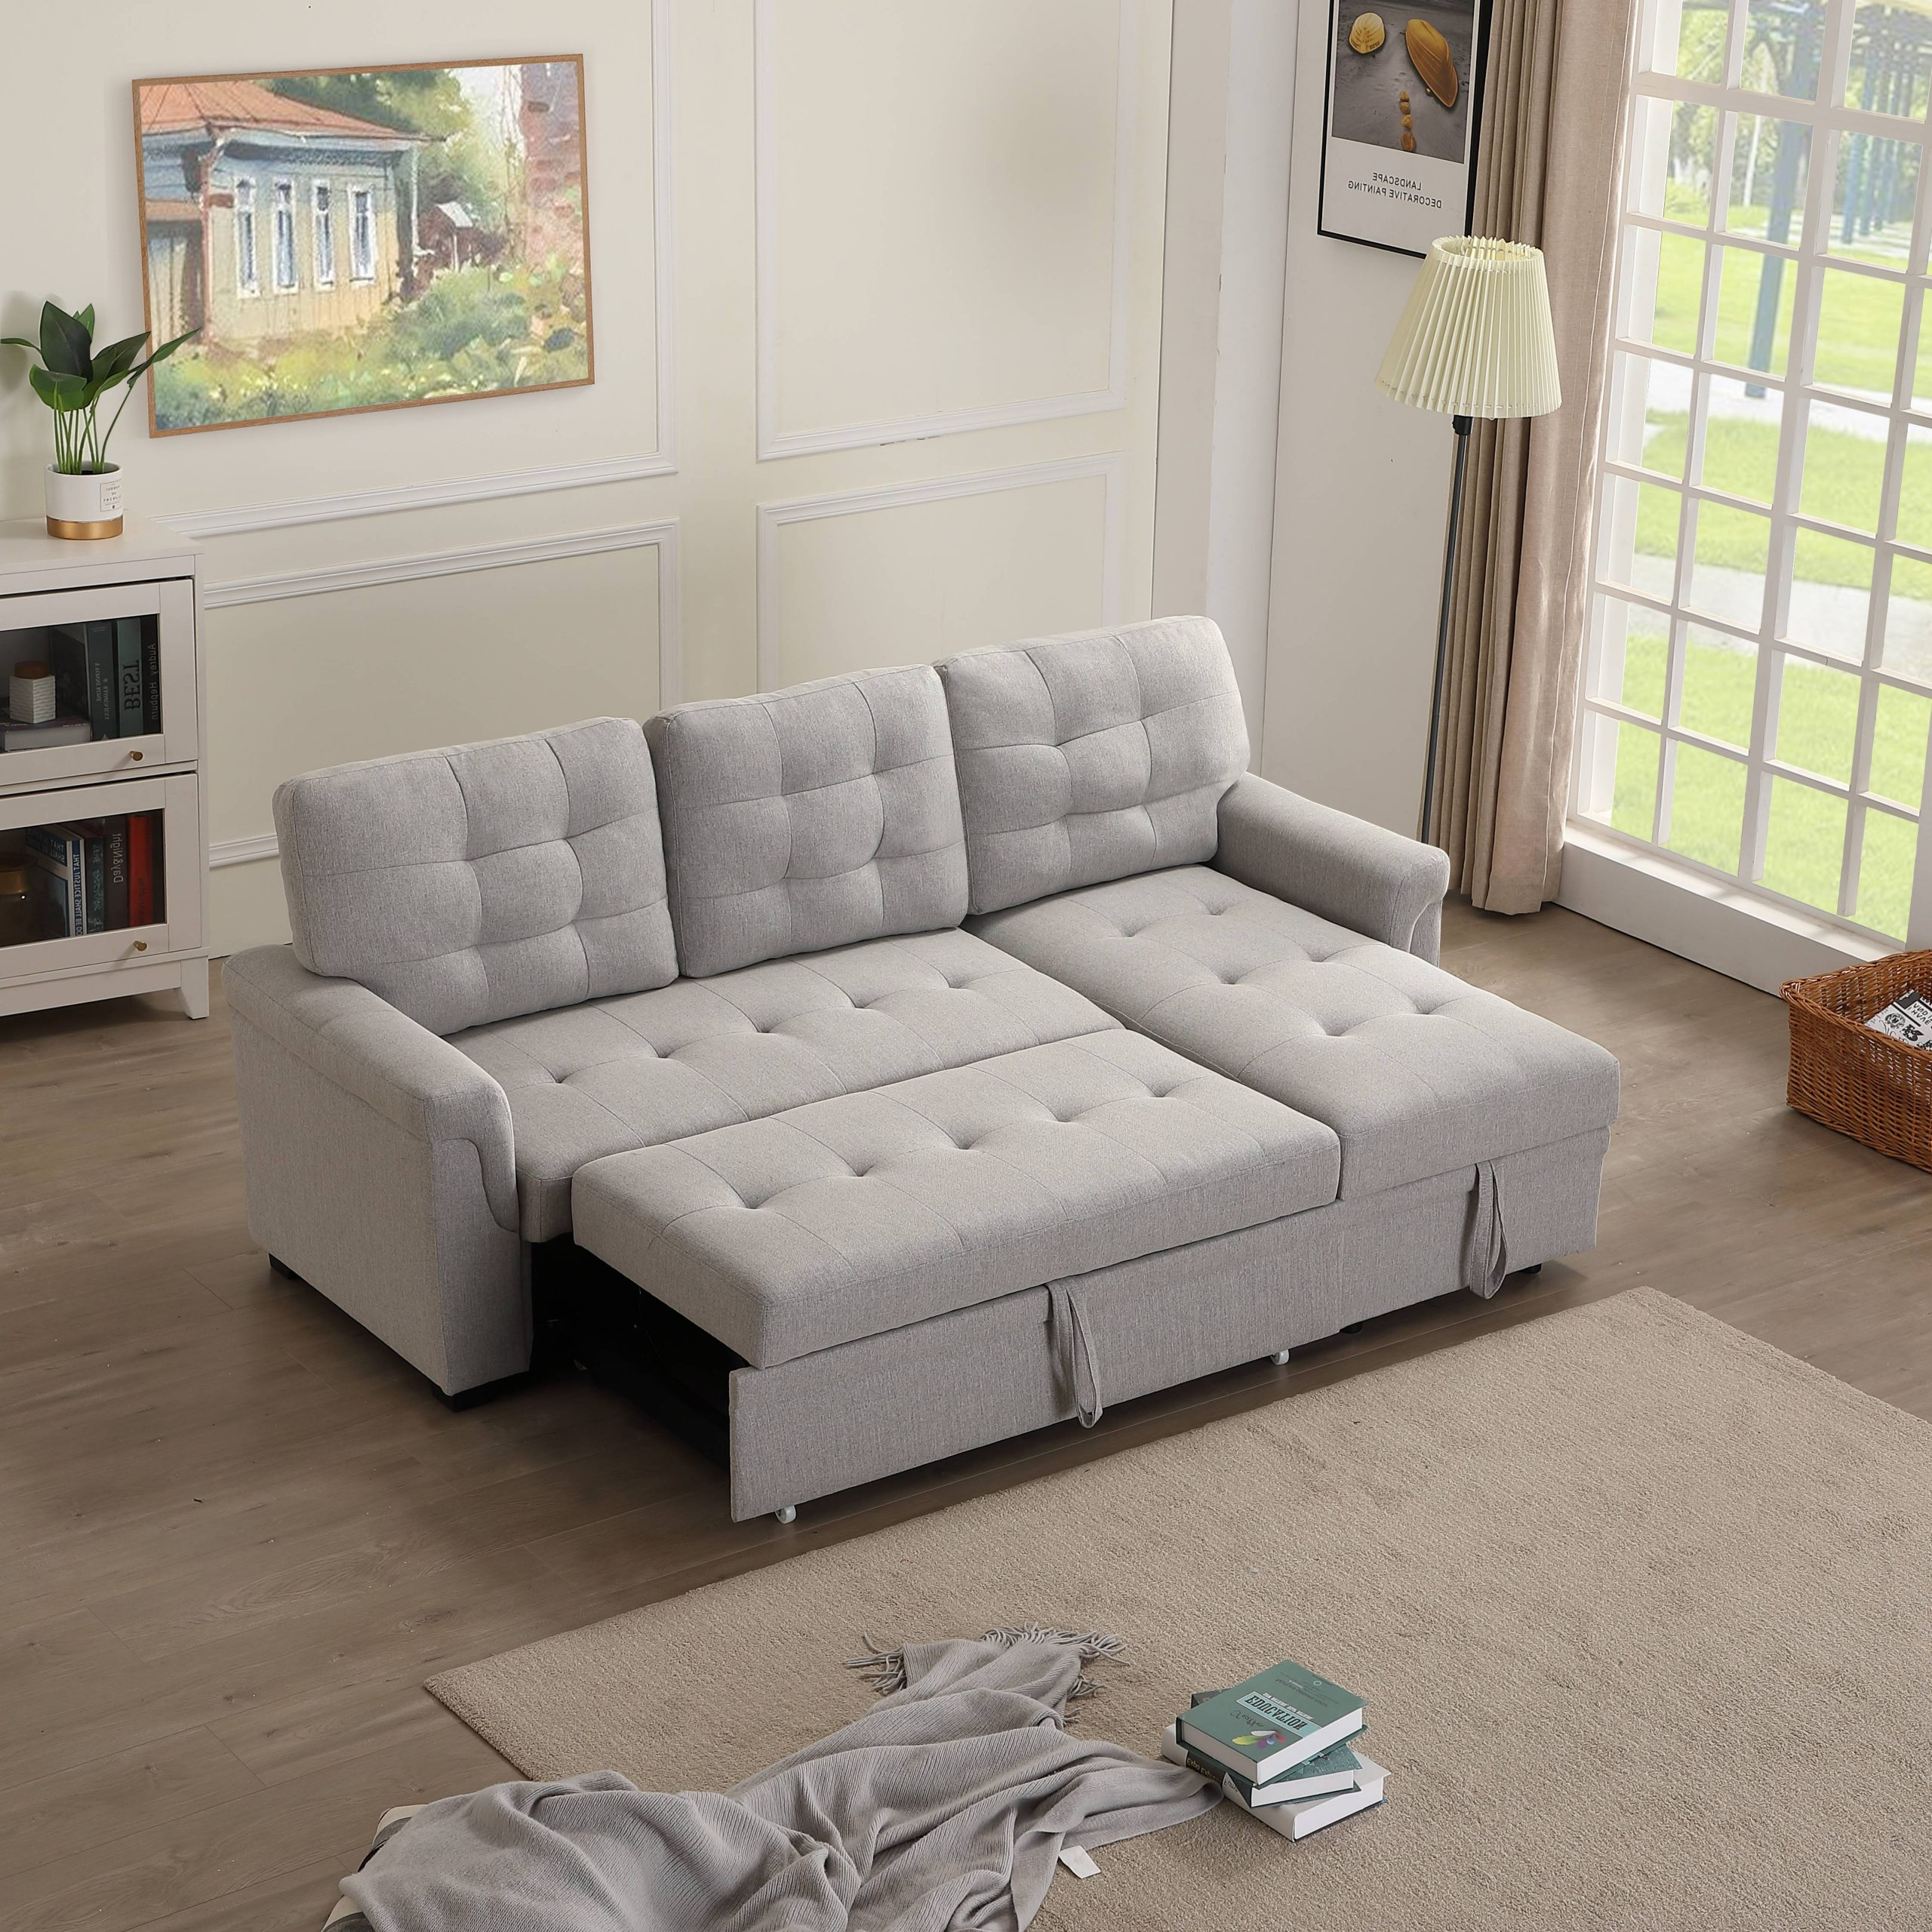 Liberty Sectional Futon Sofas With Storage Within Popular Upholstery Twin Sleeper Tufted Sofa Bed For Livingroom,  (View 14 of 25)